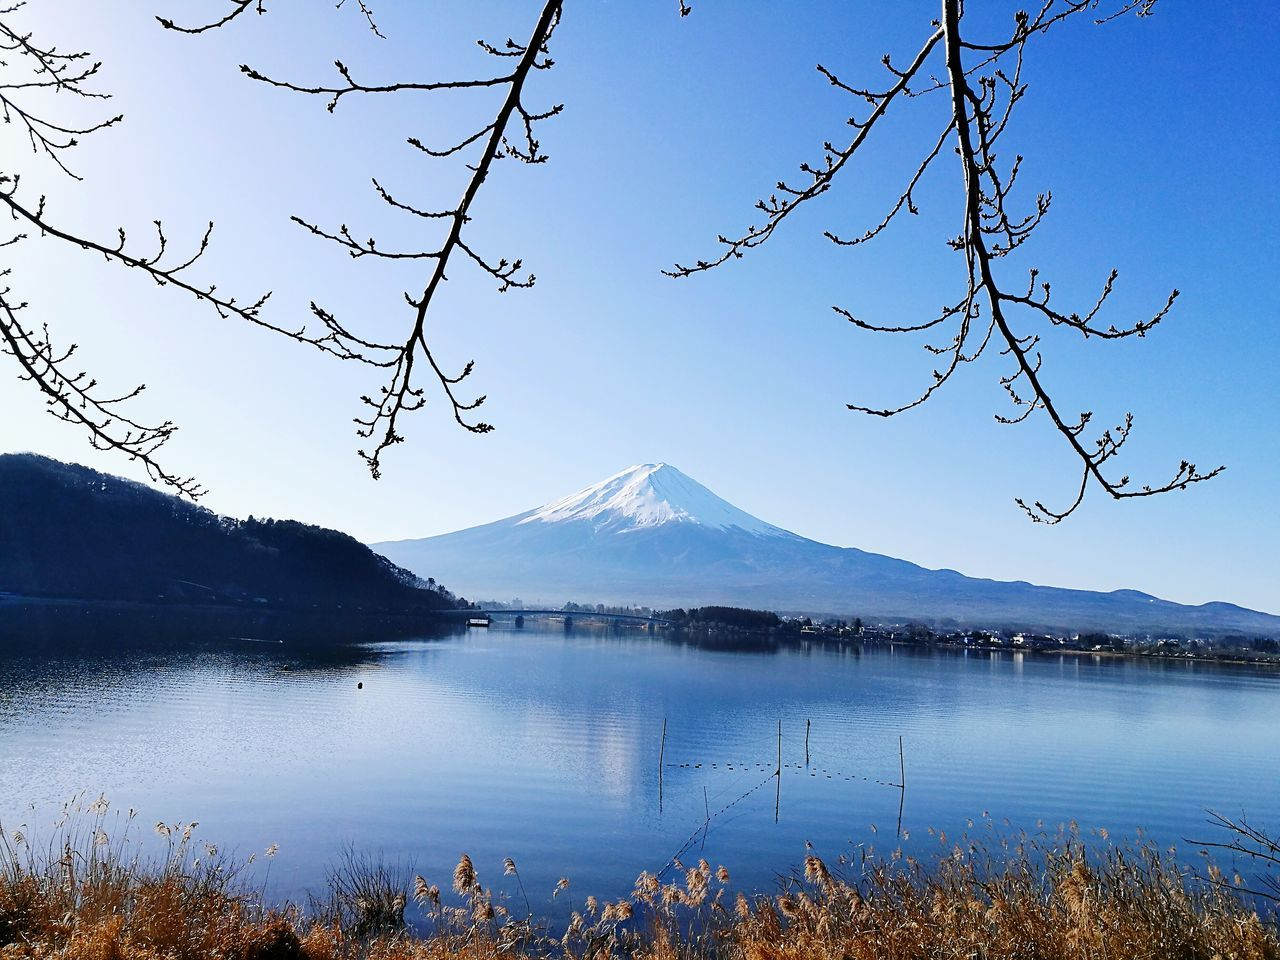 mountain, nature, beauty in nature, scenics, lake, blue, tranquility, no people, tranquil scene, tree, water, mountain range, outdoors, clear sky, sky, snow, snowcapped mountain, day, landscape, branch, peak